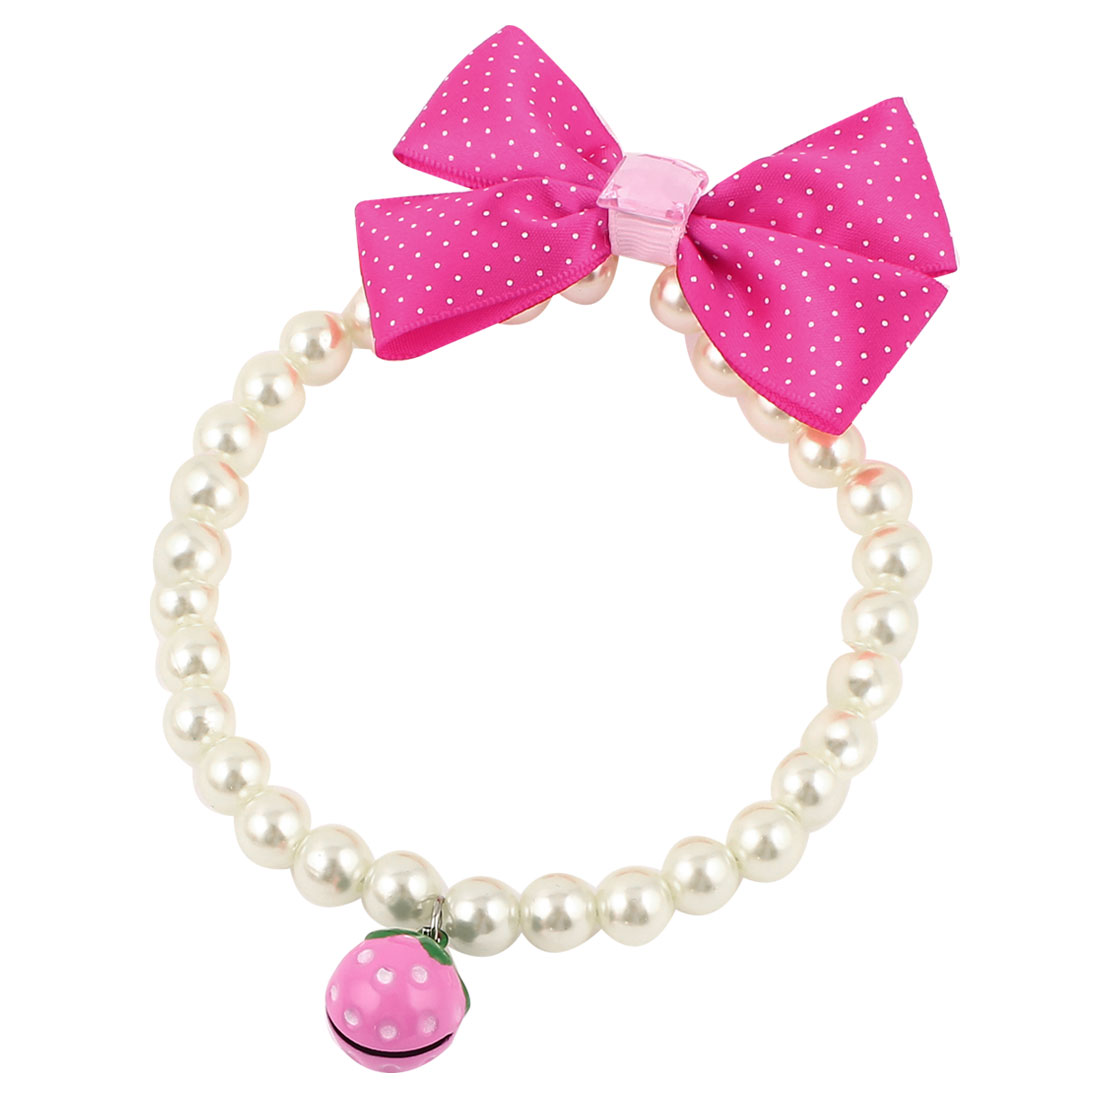 Metal Bell Pendant Bowknot Accent Pet Dog Plastic Beads Pearls Collar Necklace White Fuchsia M